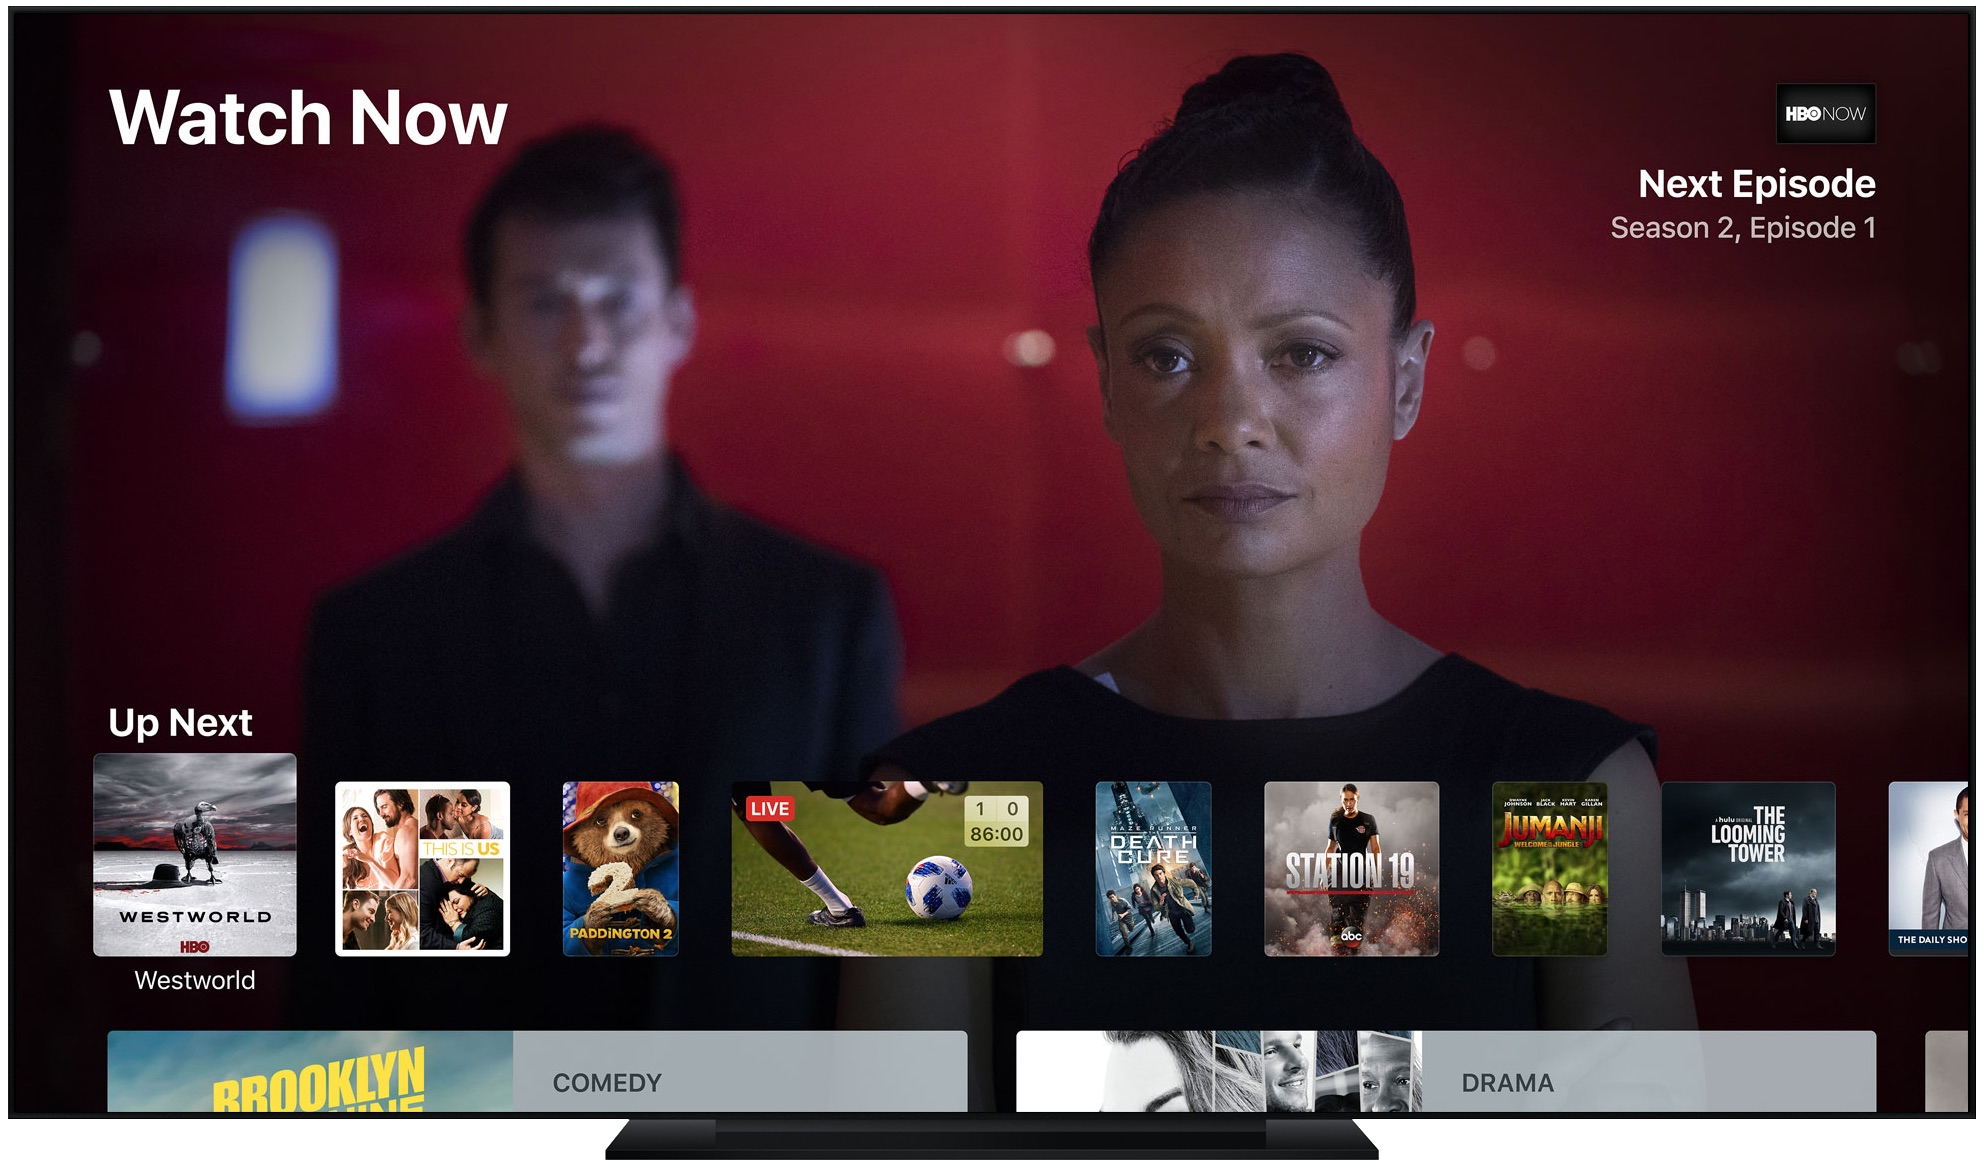 A teaser image showing the TV app on Apple TV. With iOS 11 or newer, iPhone and iPad users can control their Apple TV from iOS's Control Center interface. Read the article to learn how.